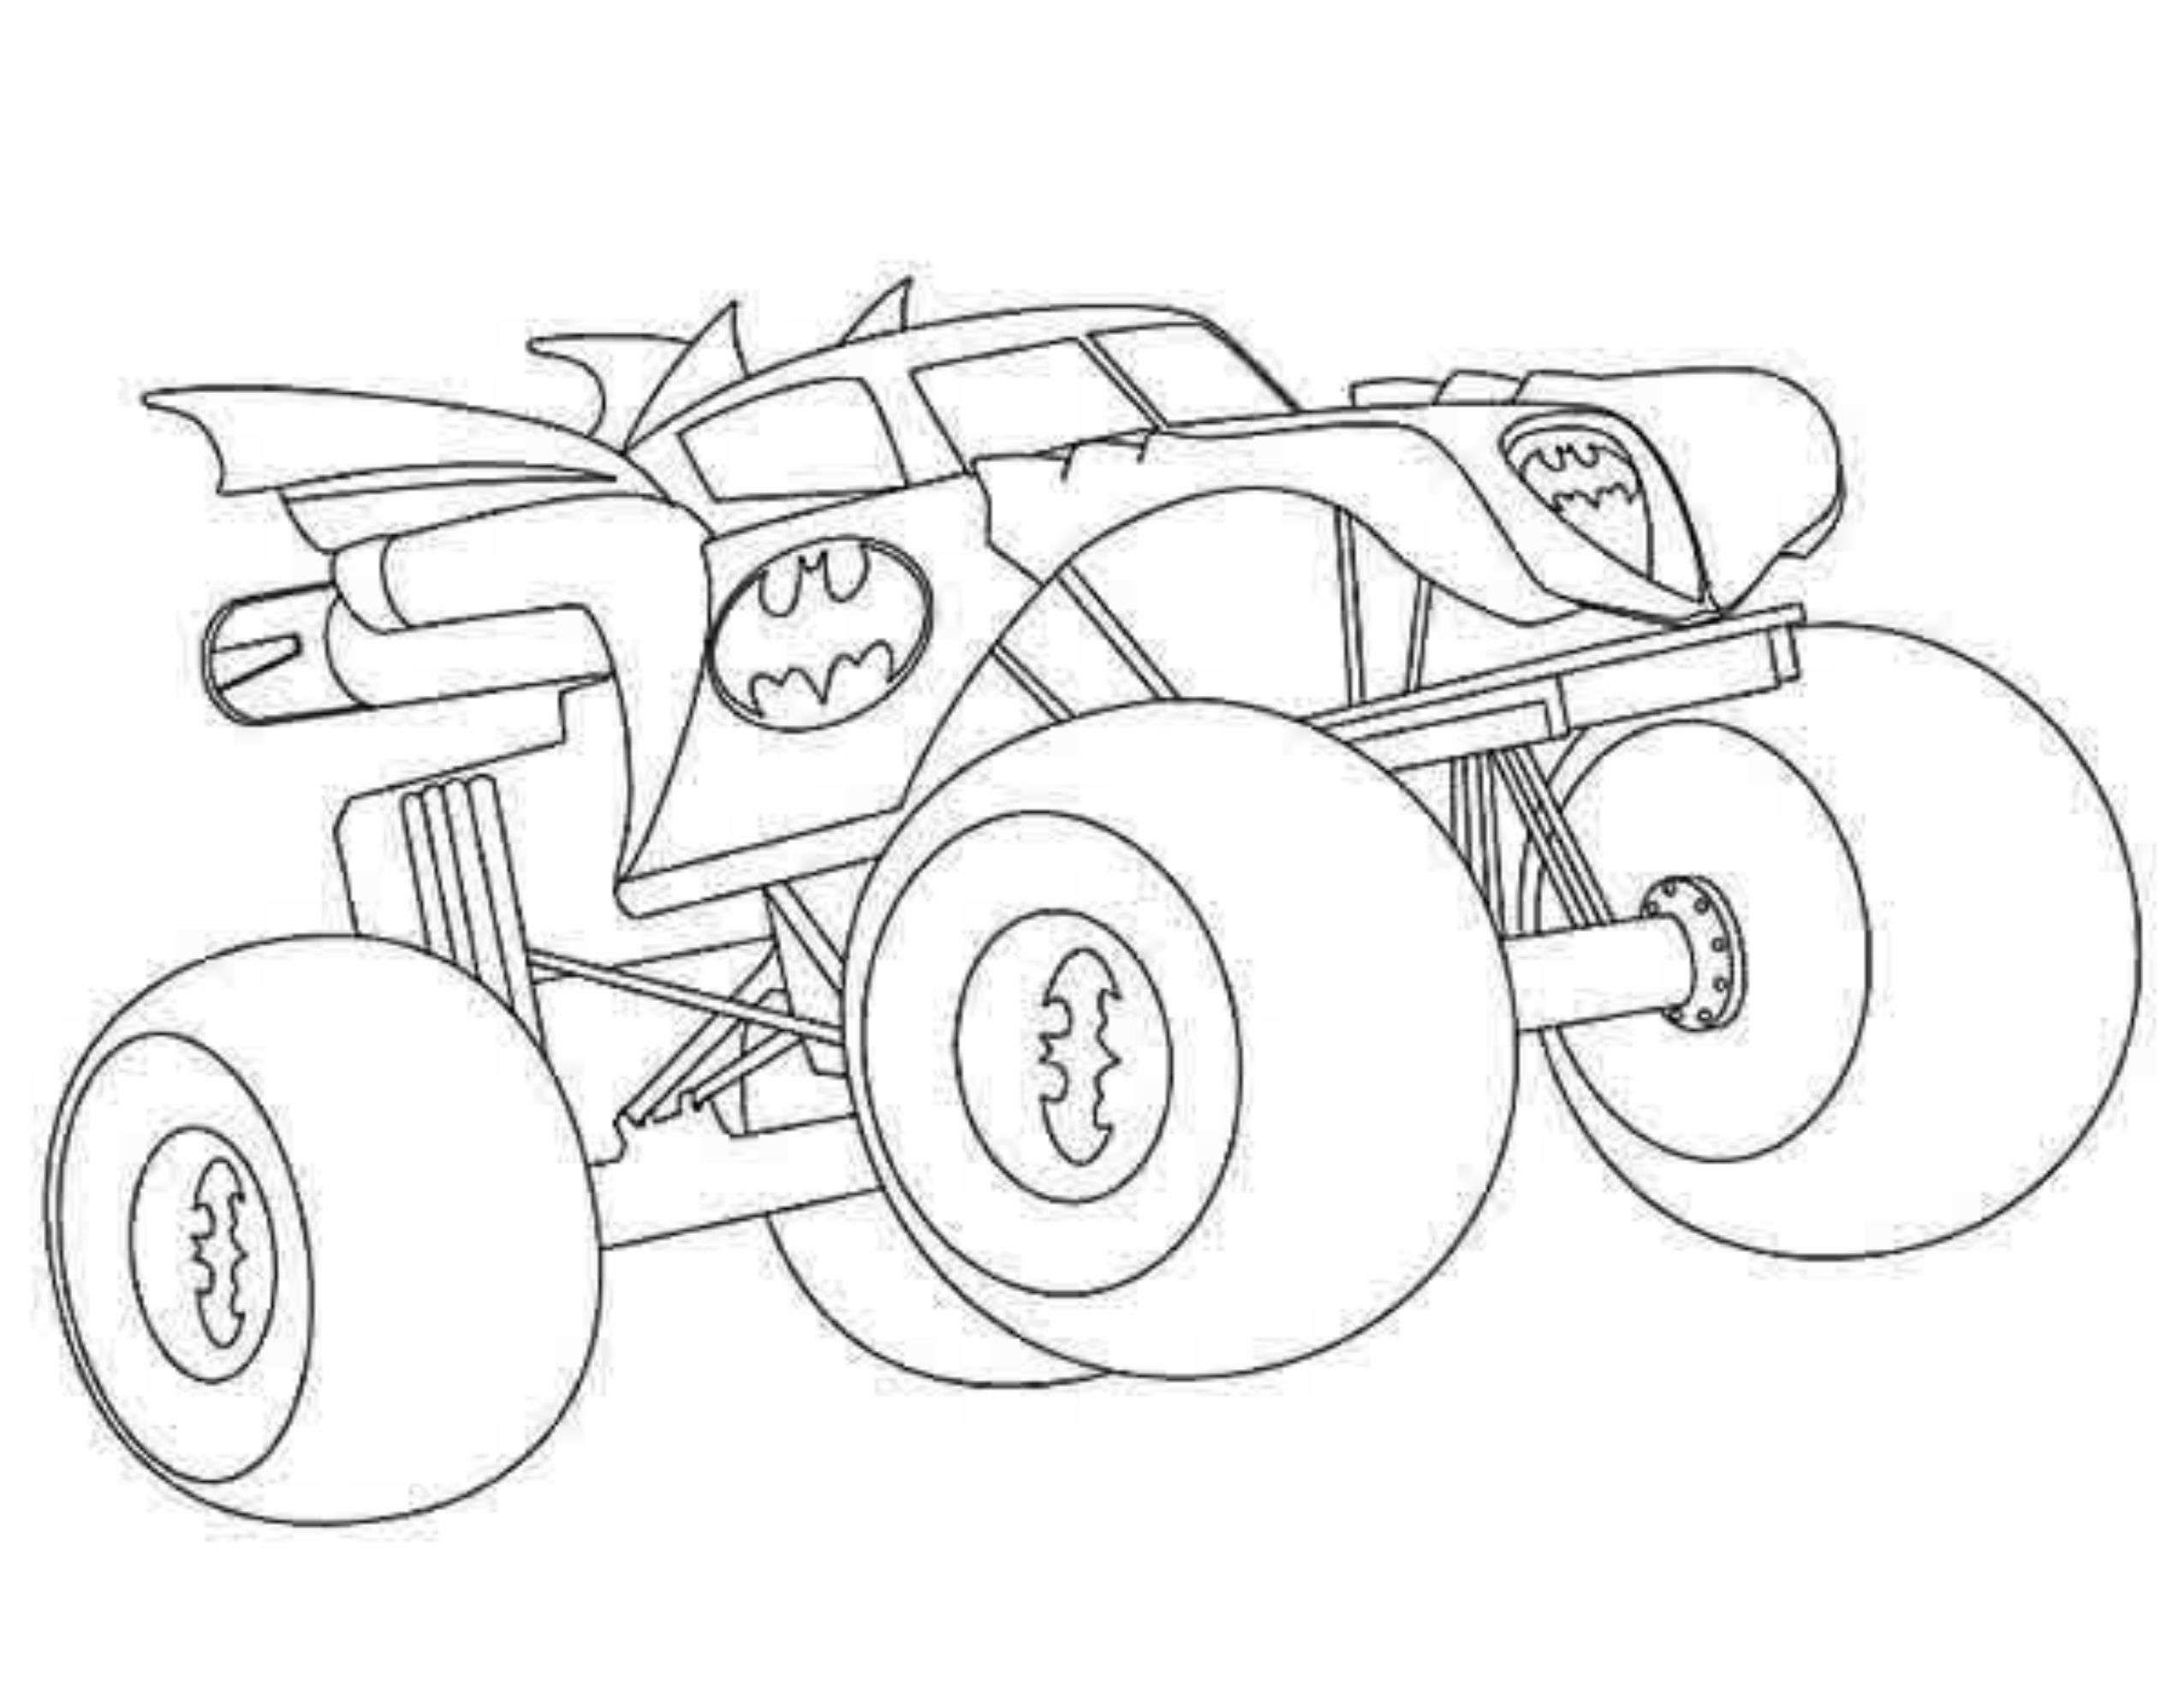 Monster Truck Coloring Pages Monster Truck Coloring Pages For Kids Az Coloring Pag Monster Truck Coloring Pages Truck Coloring Pages Monster Coloring Pages